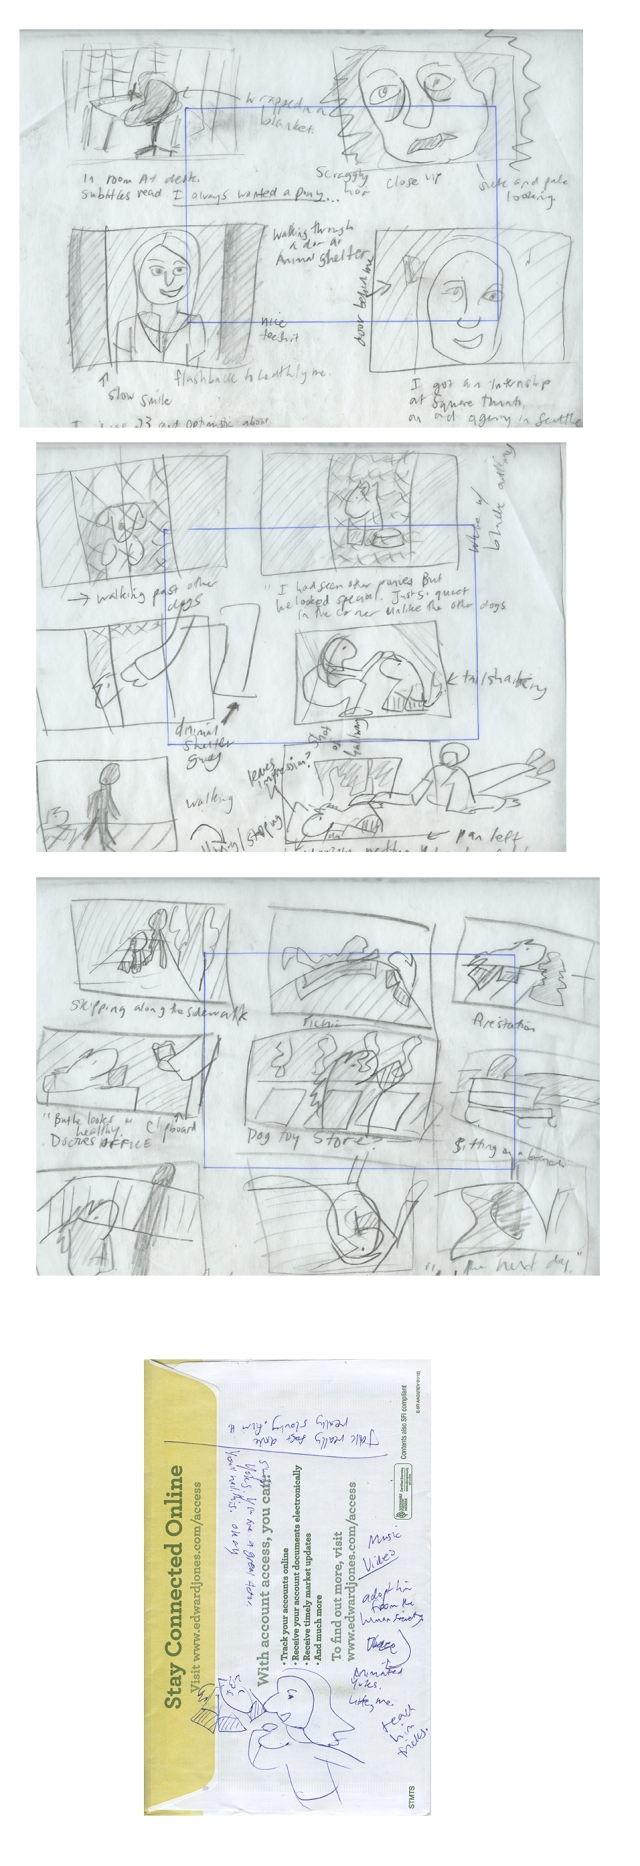 yoksanimationstoryboard'